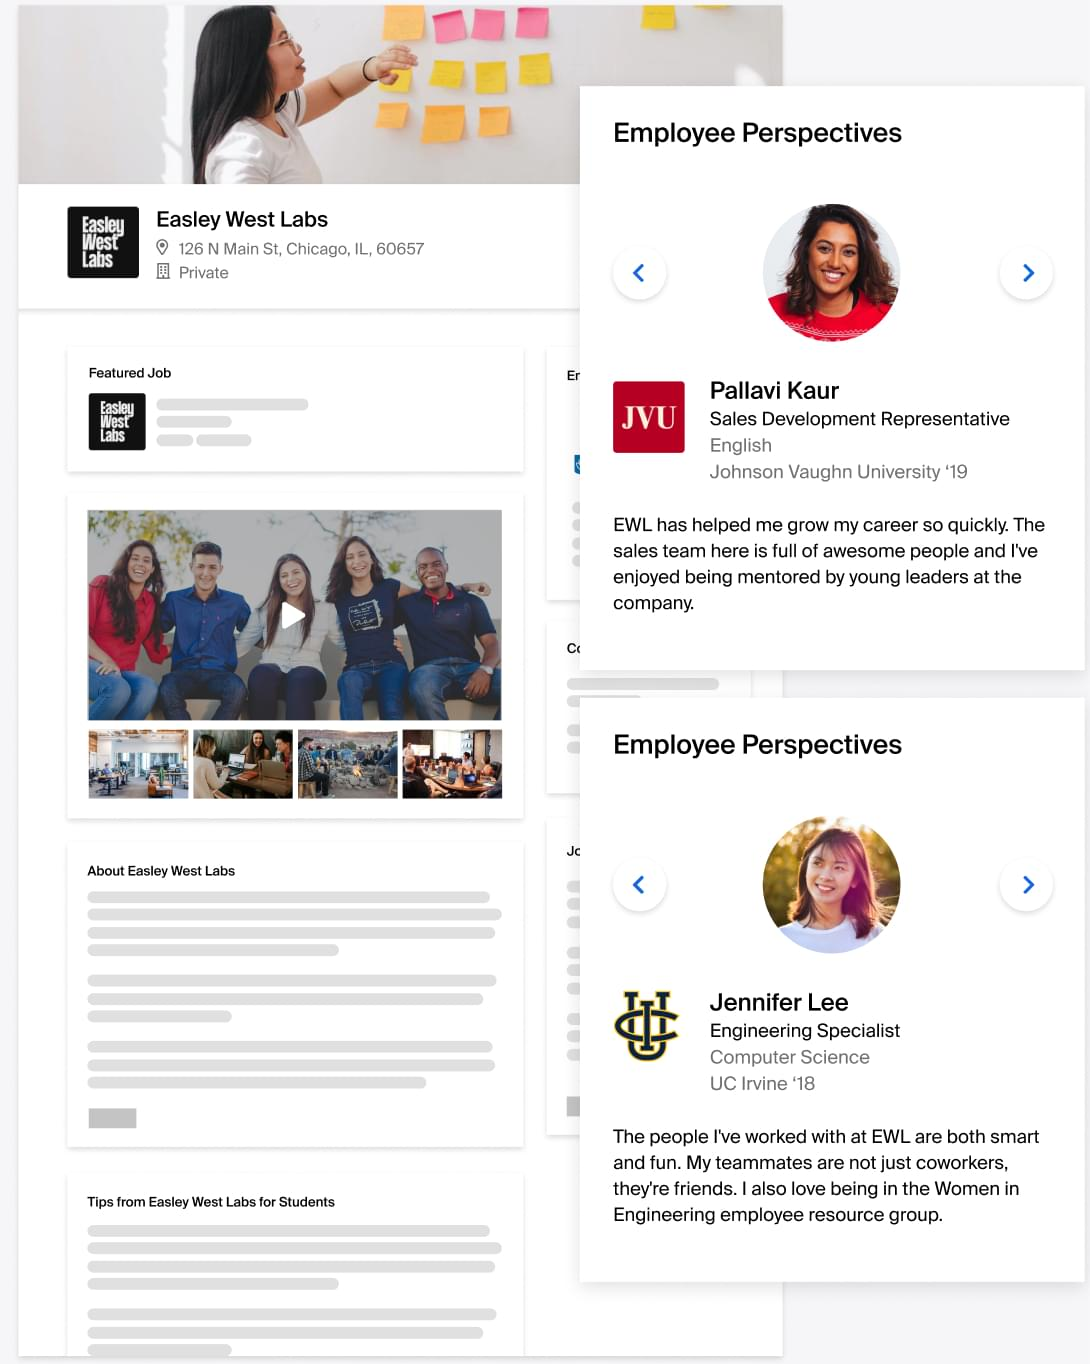 Personalize your employer brand